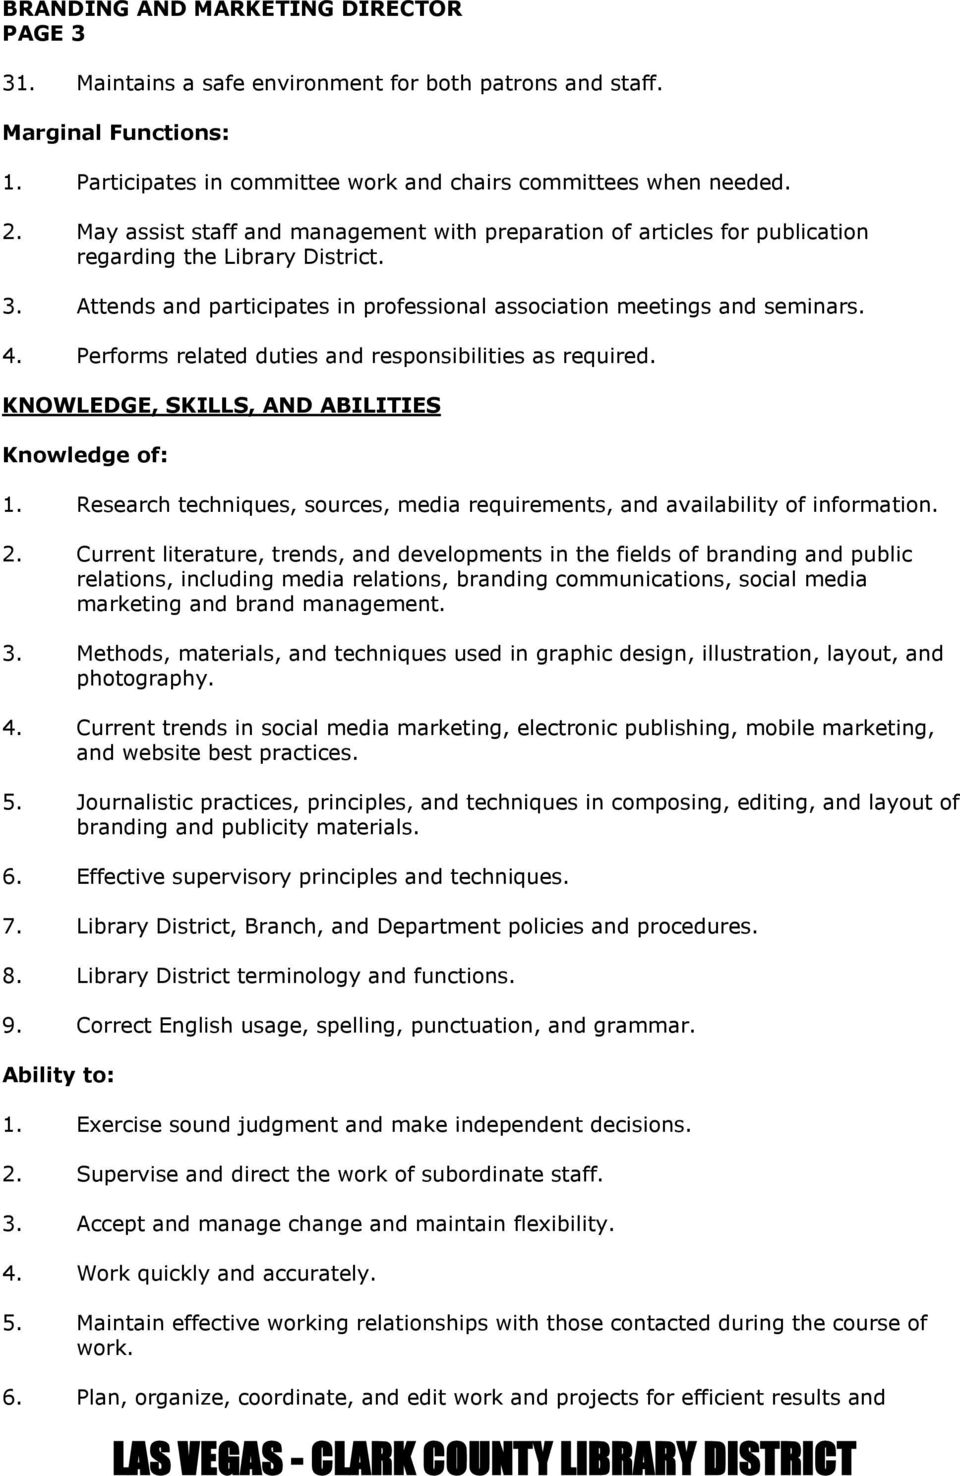 Performs related duties and responsibilities as required. KNOWLEDGE, SKILLS, AND ABILITIES Knowledge of: 1. Research techniques, sources, media requirements, and availability of information. 2.